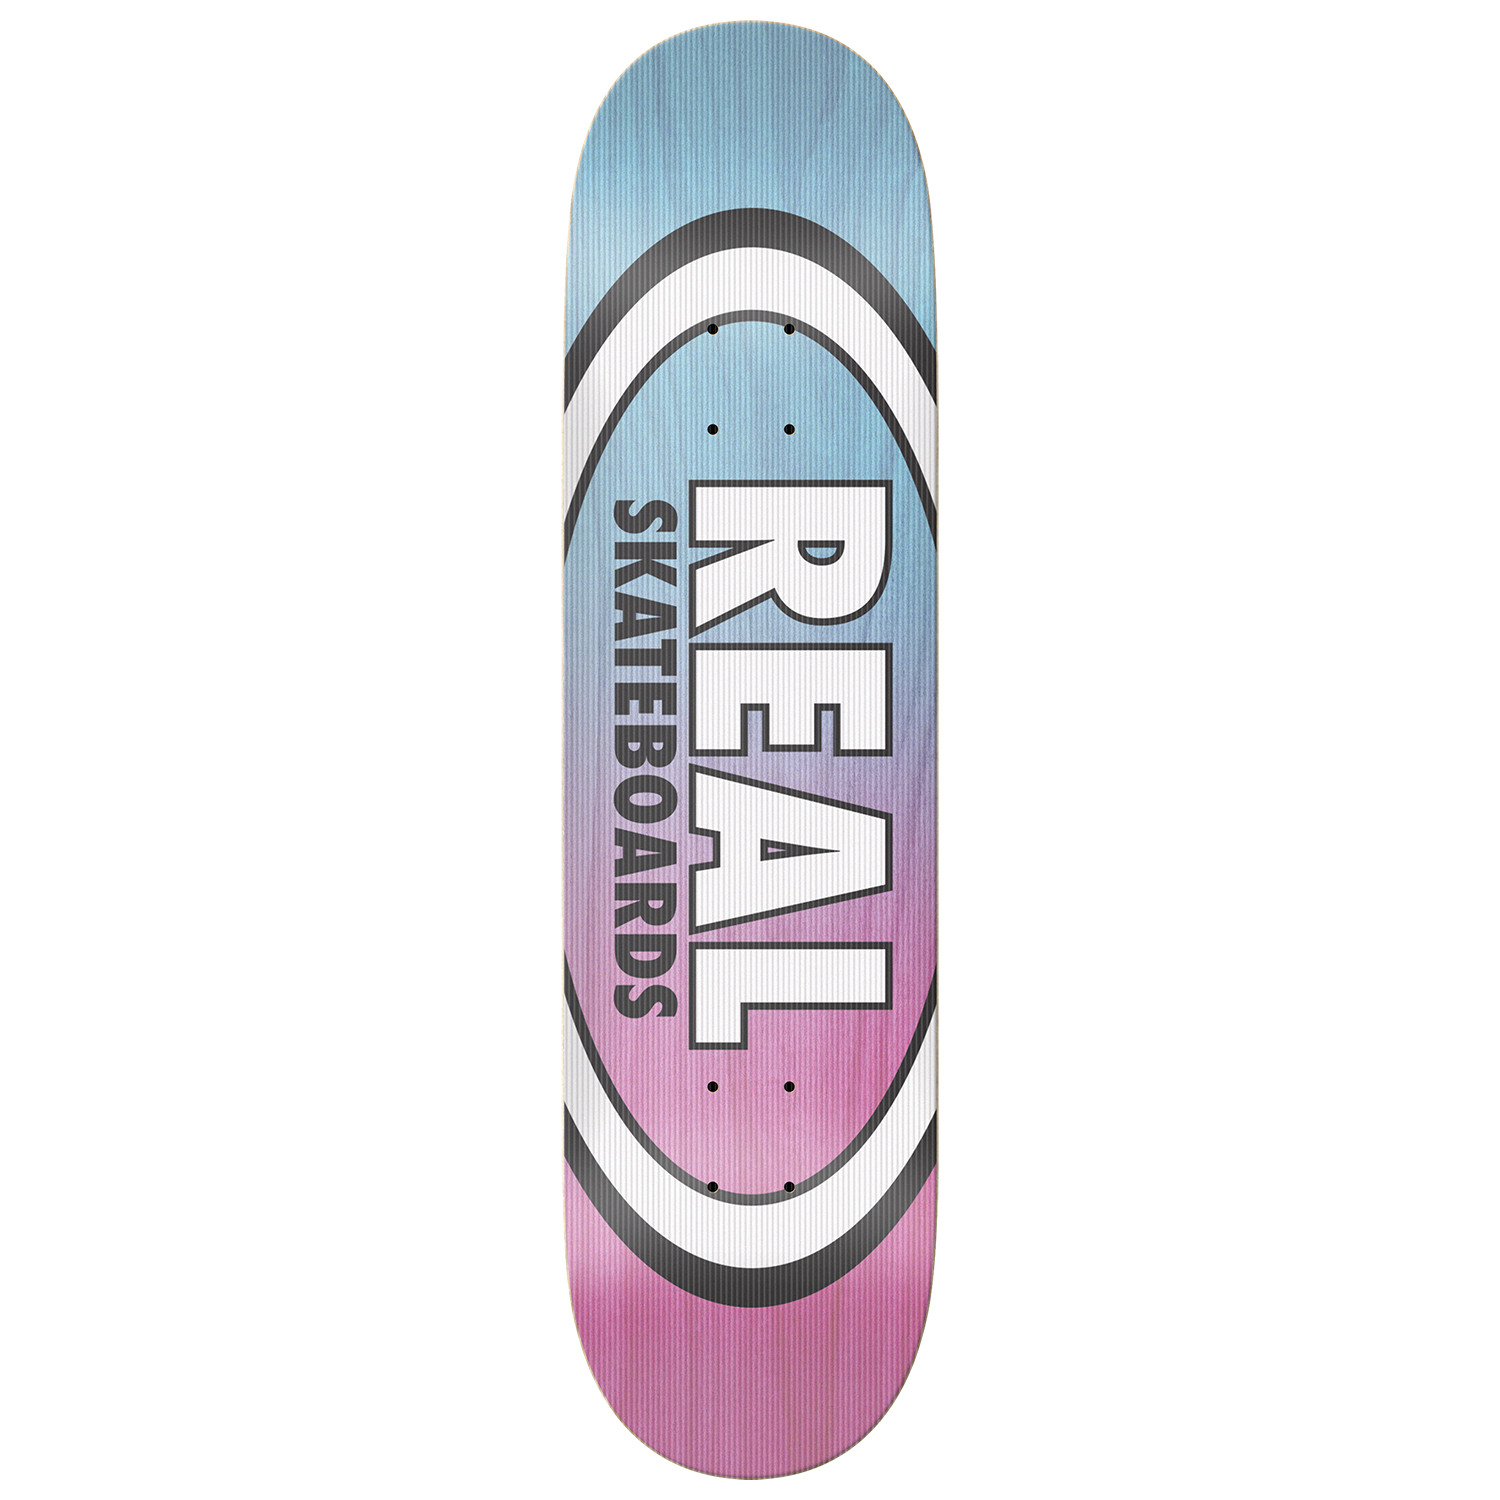 Tabla Real Shine on Oval - 8.25''